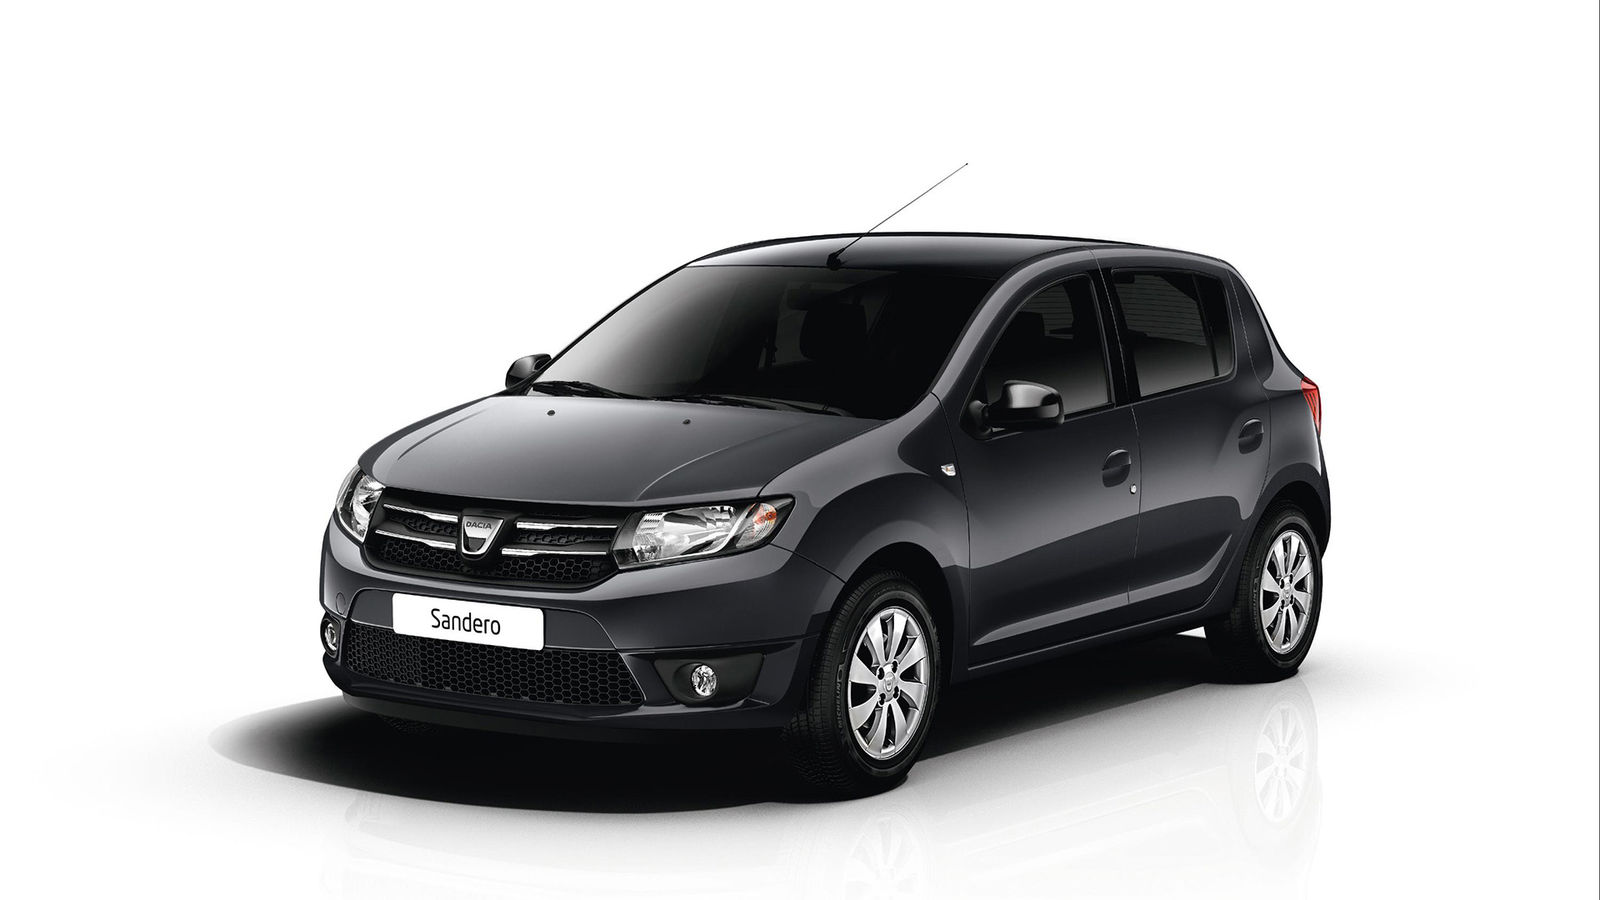 2015 dacia sandero midnight special edition carwow. Black Bedroom Furniture Sets. Home Design Ideas